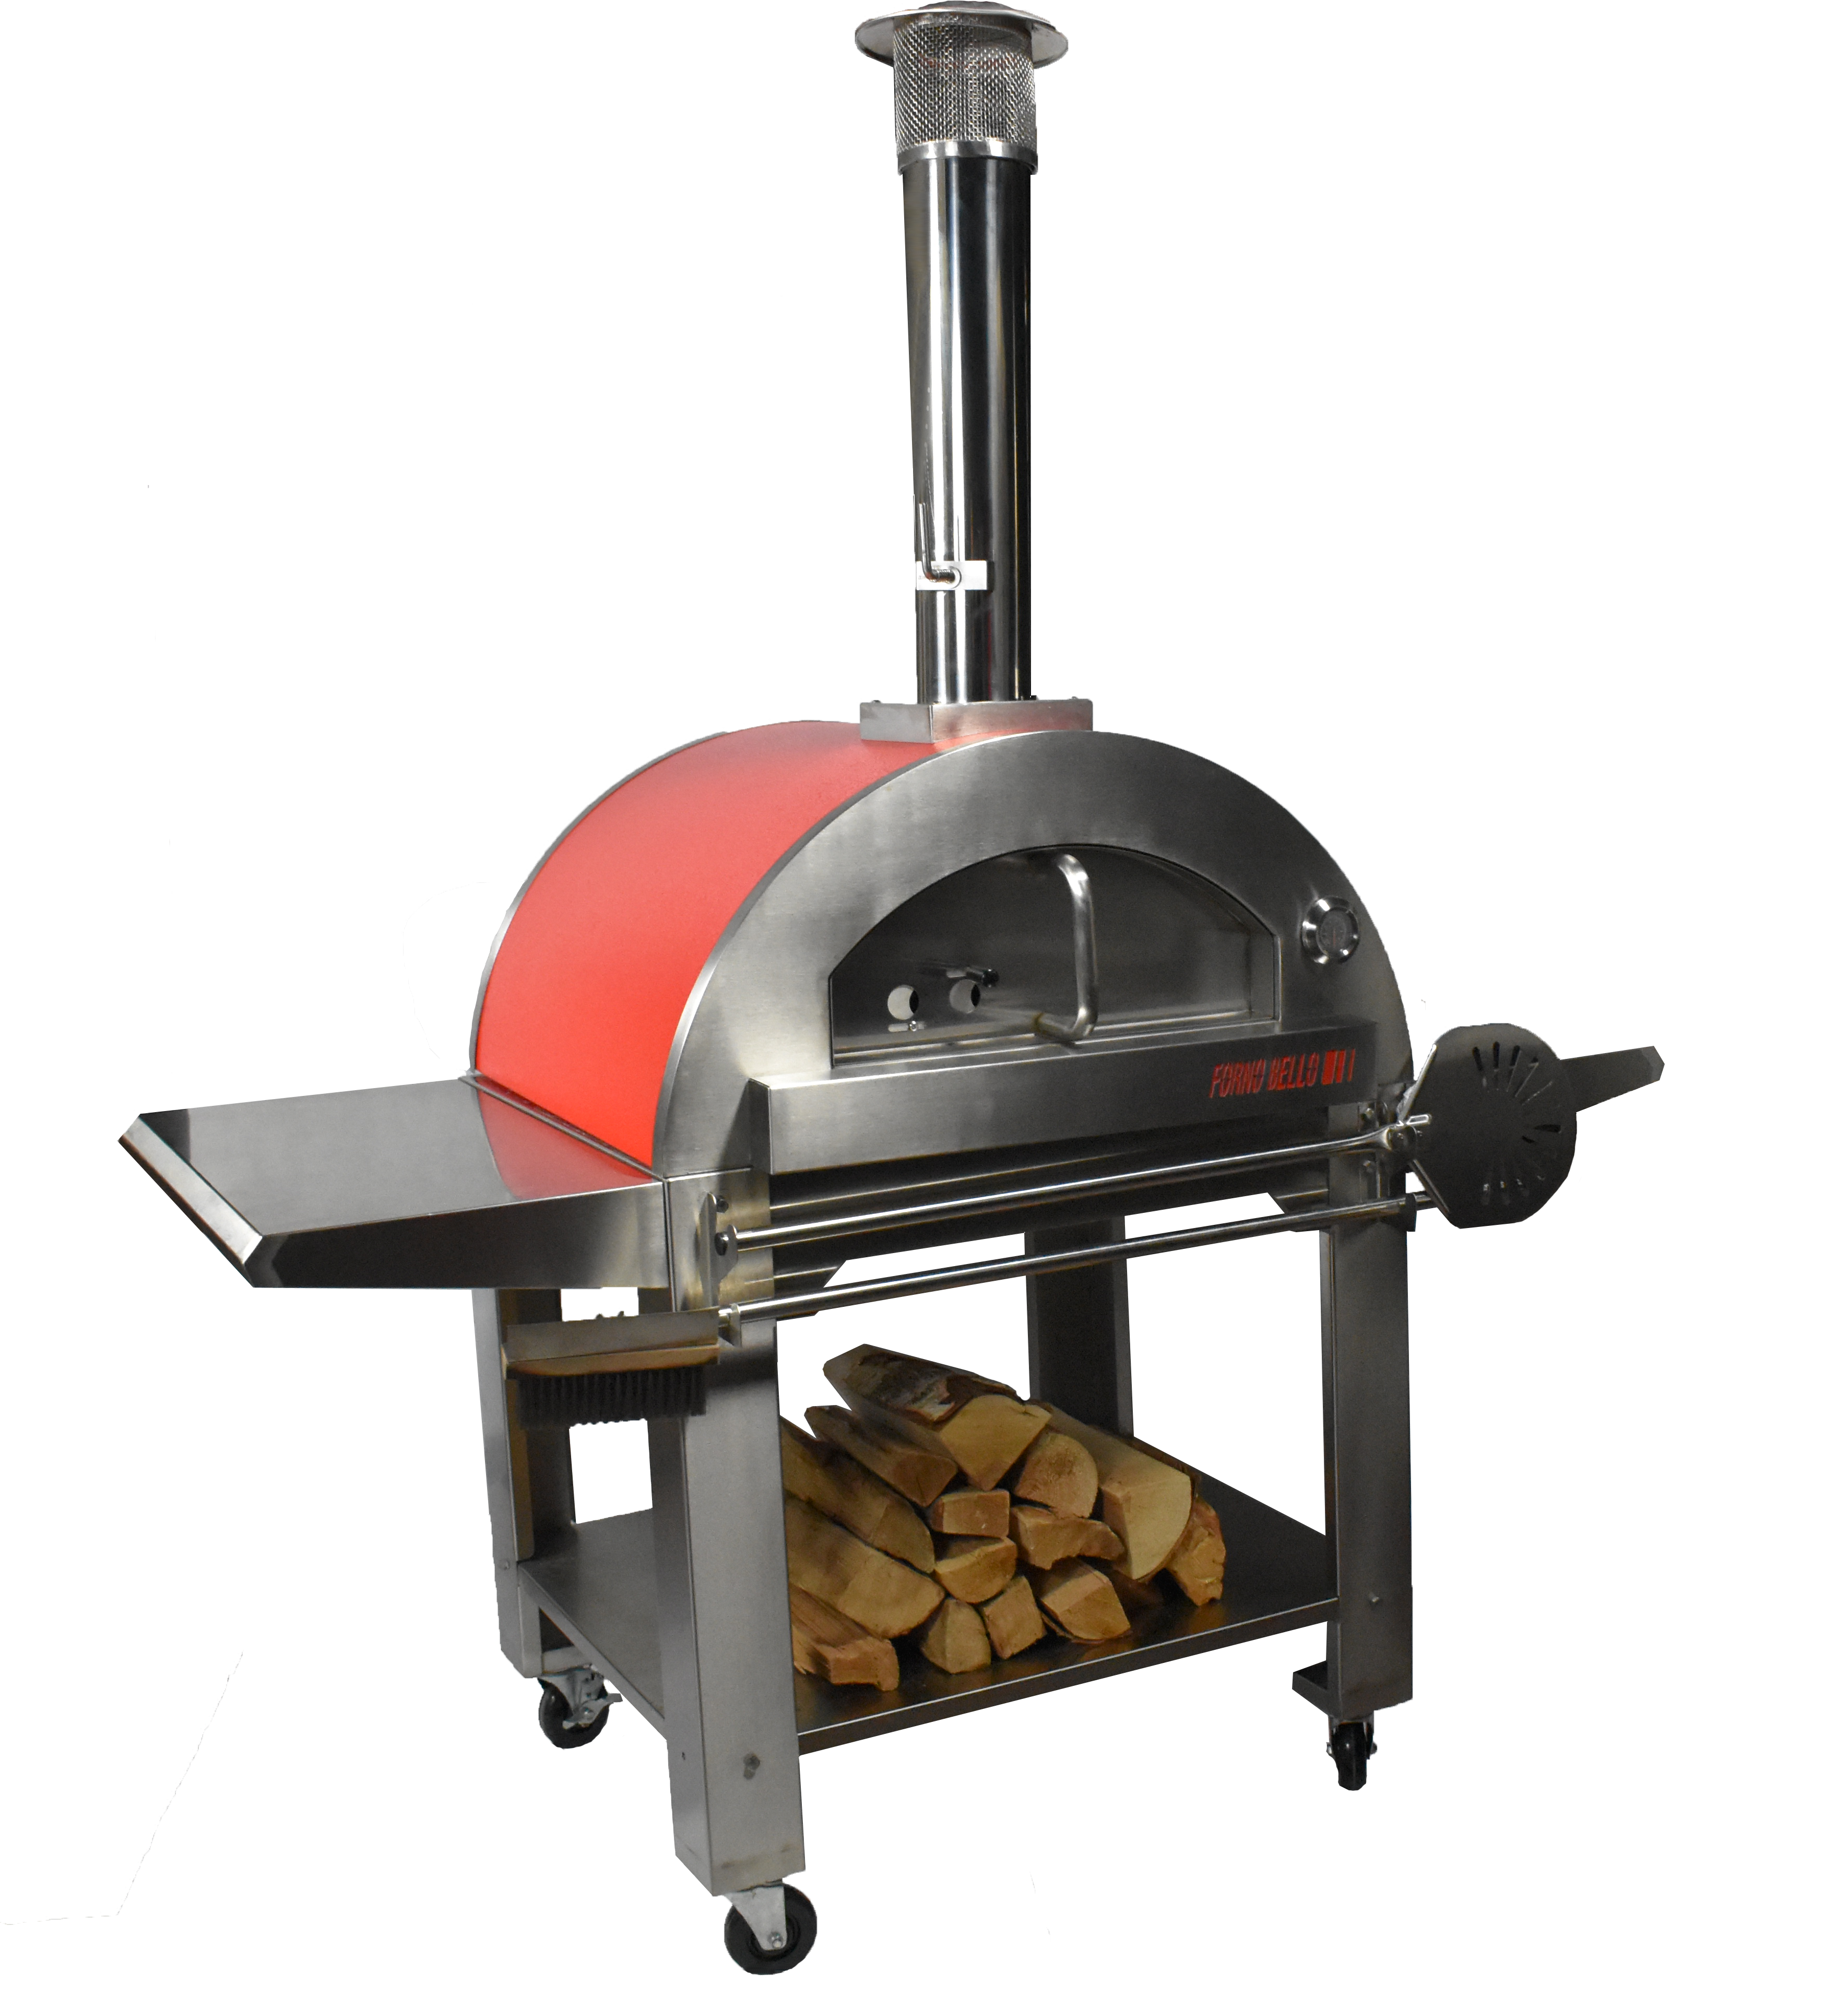 Buy Forno Bello Family Pizza Oven Online In Usa Backyard Brick Ovens